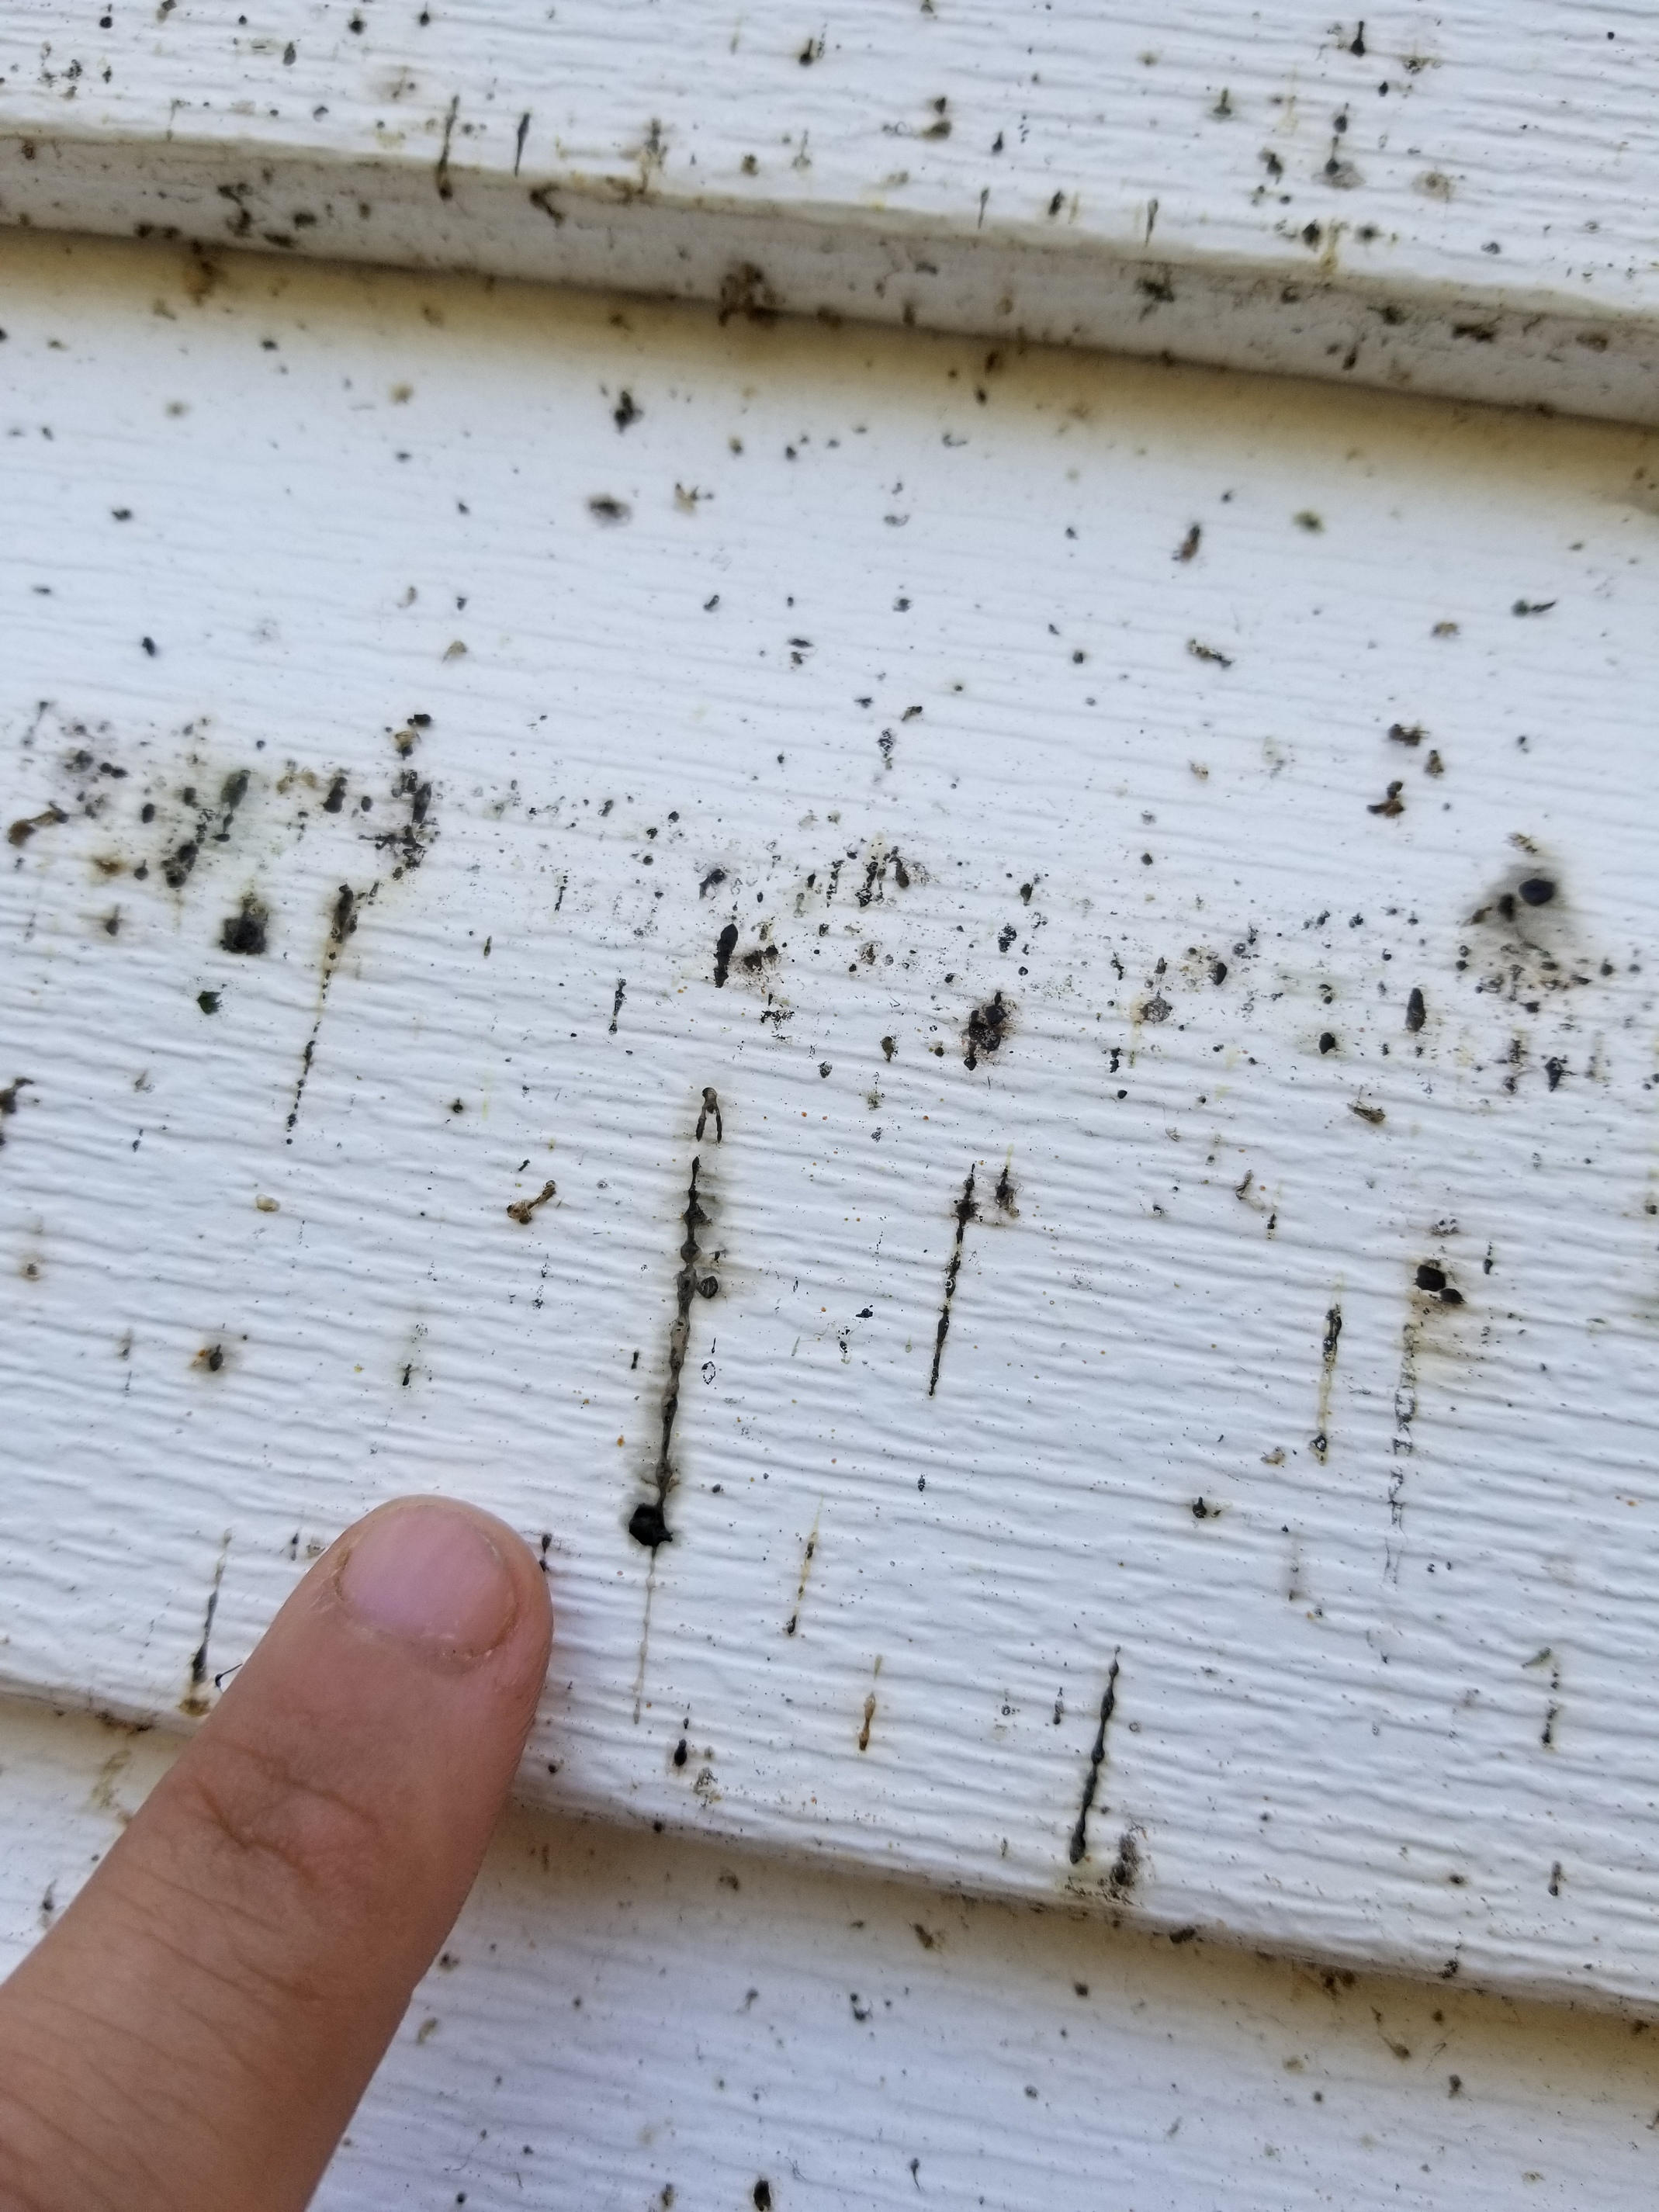 Spider Droppings Residential Pressure Washing Resource